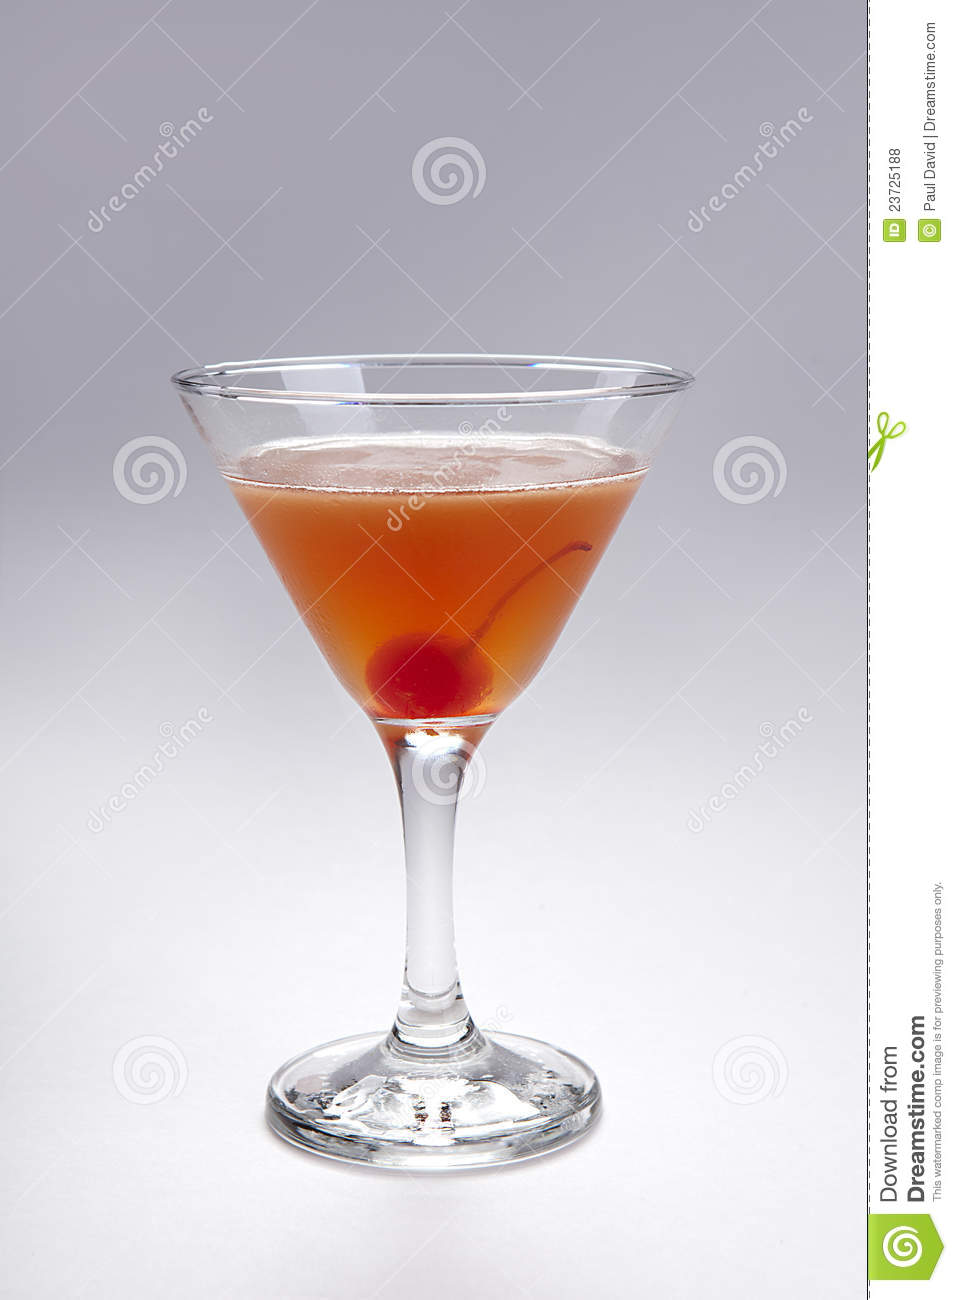 Cherry Cocktail Royalty Free Stock Photos - Image: 23725188